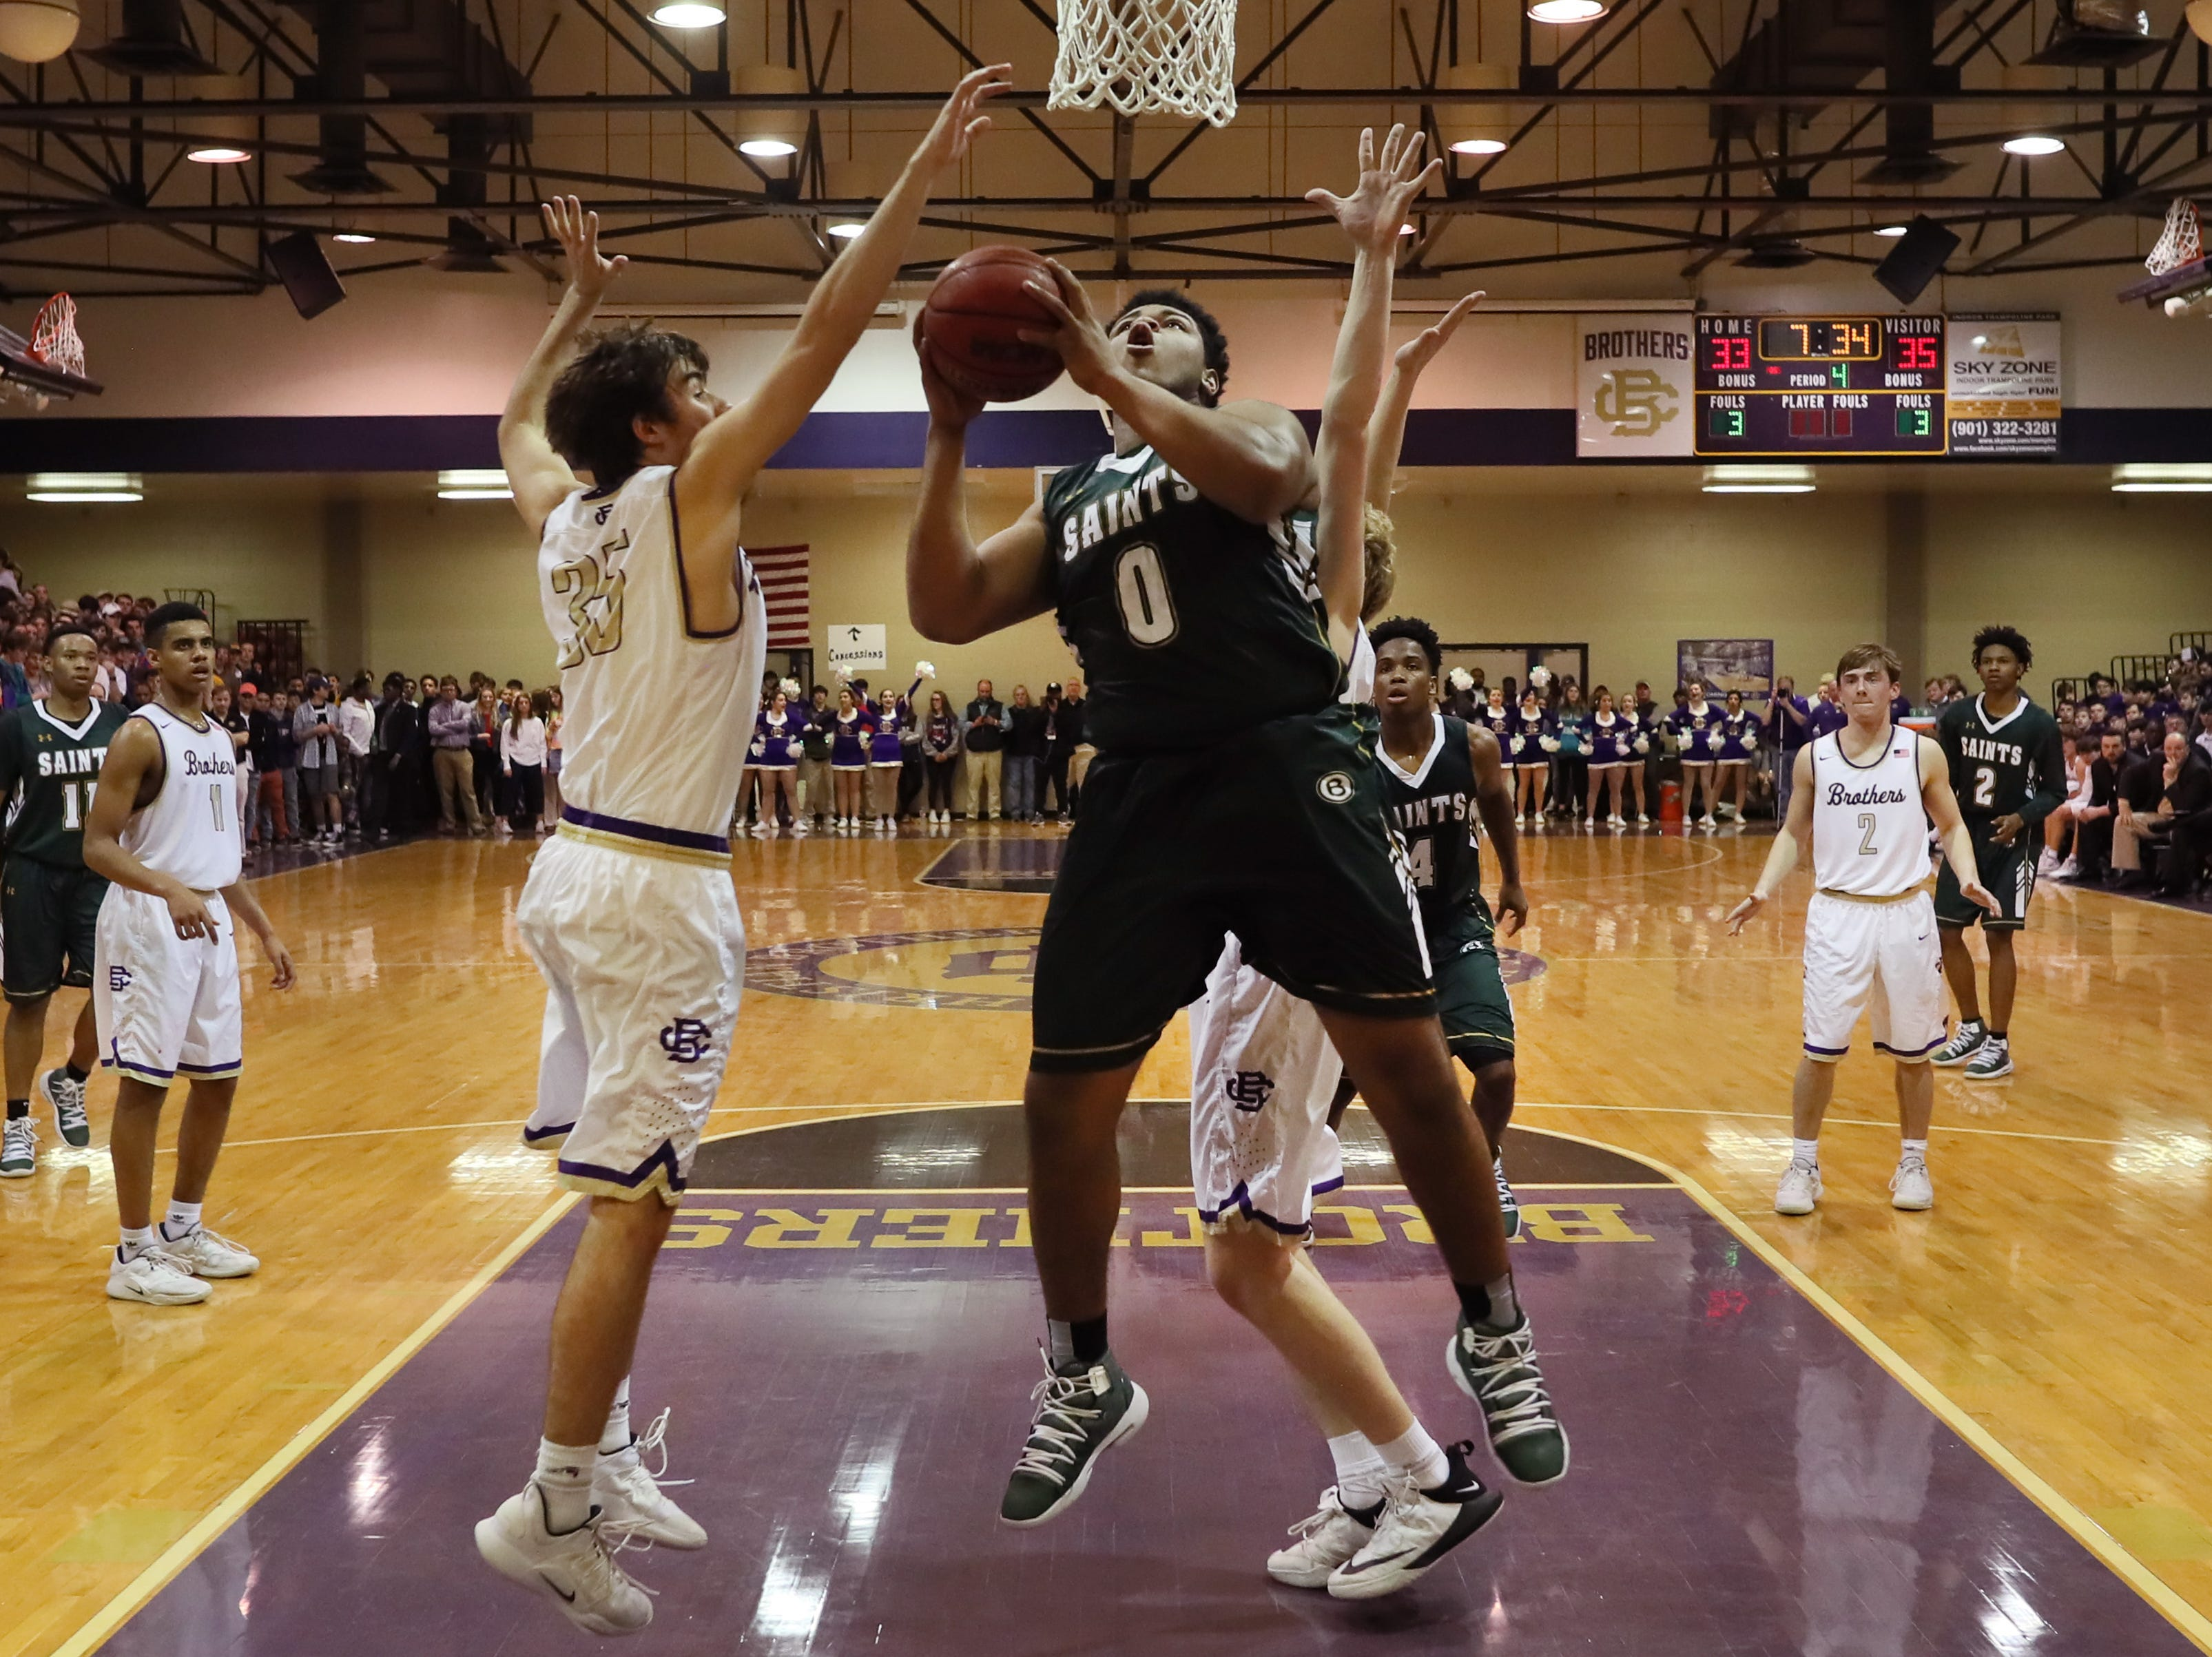 Briarcrest's Omari Thomas shoots the ball over Christian Brothers' Sam Spence during their game at Christian Brothers High School on Friday, Jan. 11, 2019.